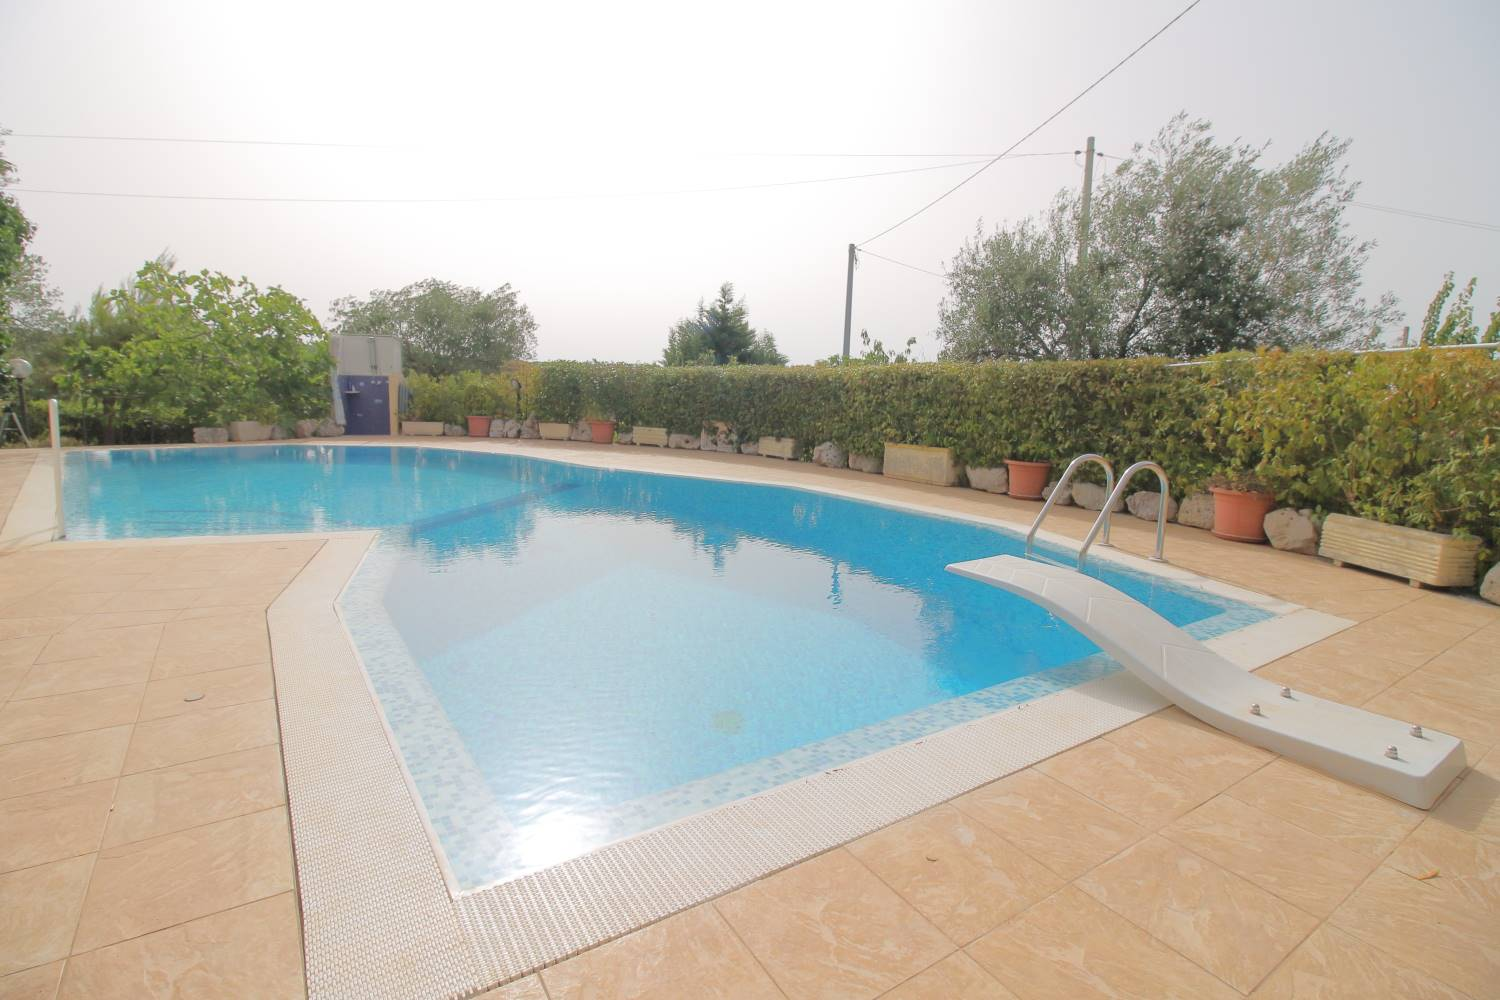 CASTELLANA GROTTE, Villa for sale, Heating Individual heating system, Energetic class: G, Epi: 165 kwh/m2 year, composed by: 3 Rooms, , 2 Bedrooms, 1 Bathroom, Price: € 188,000